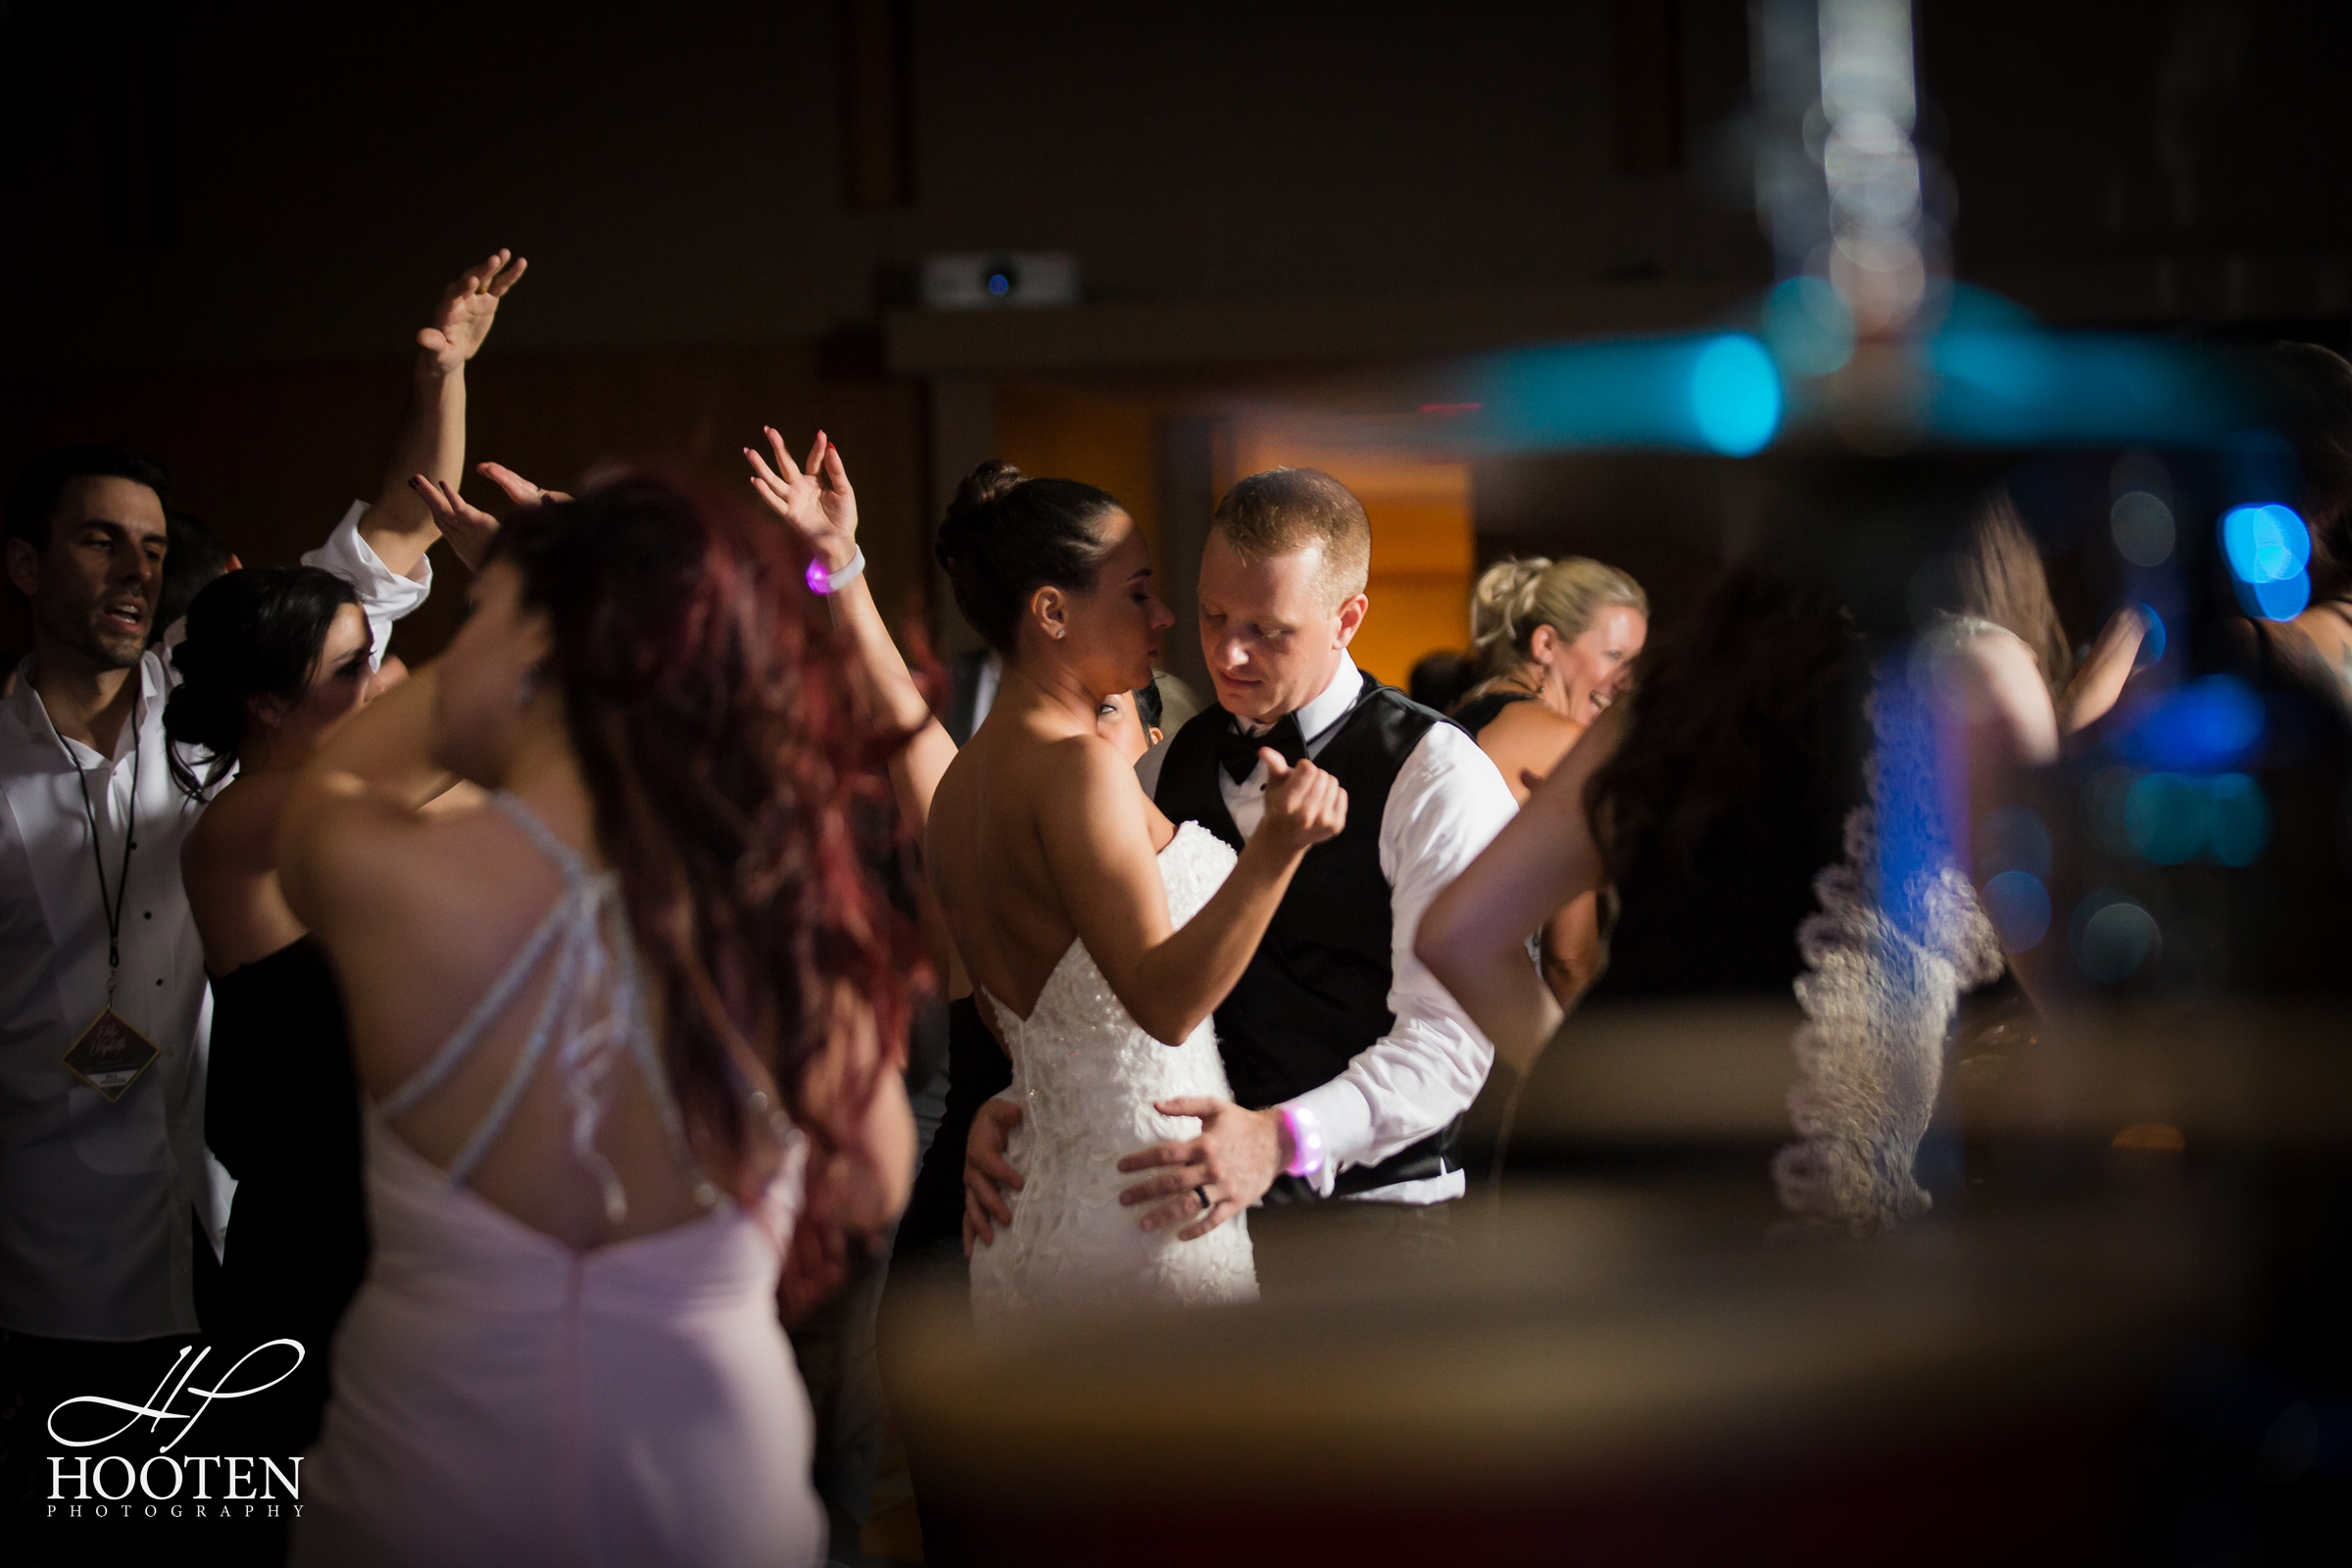 125.Conrad-Miami-Hotel-Wedding-Hooten-Photography.jpg